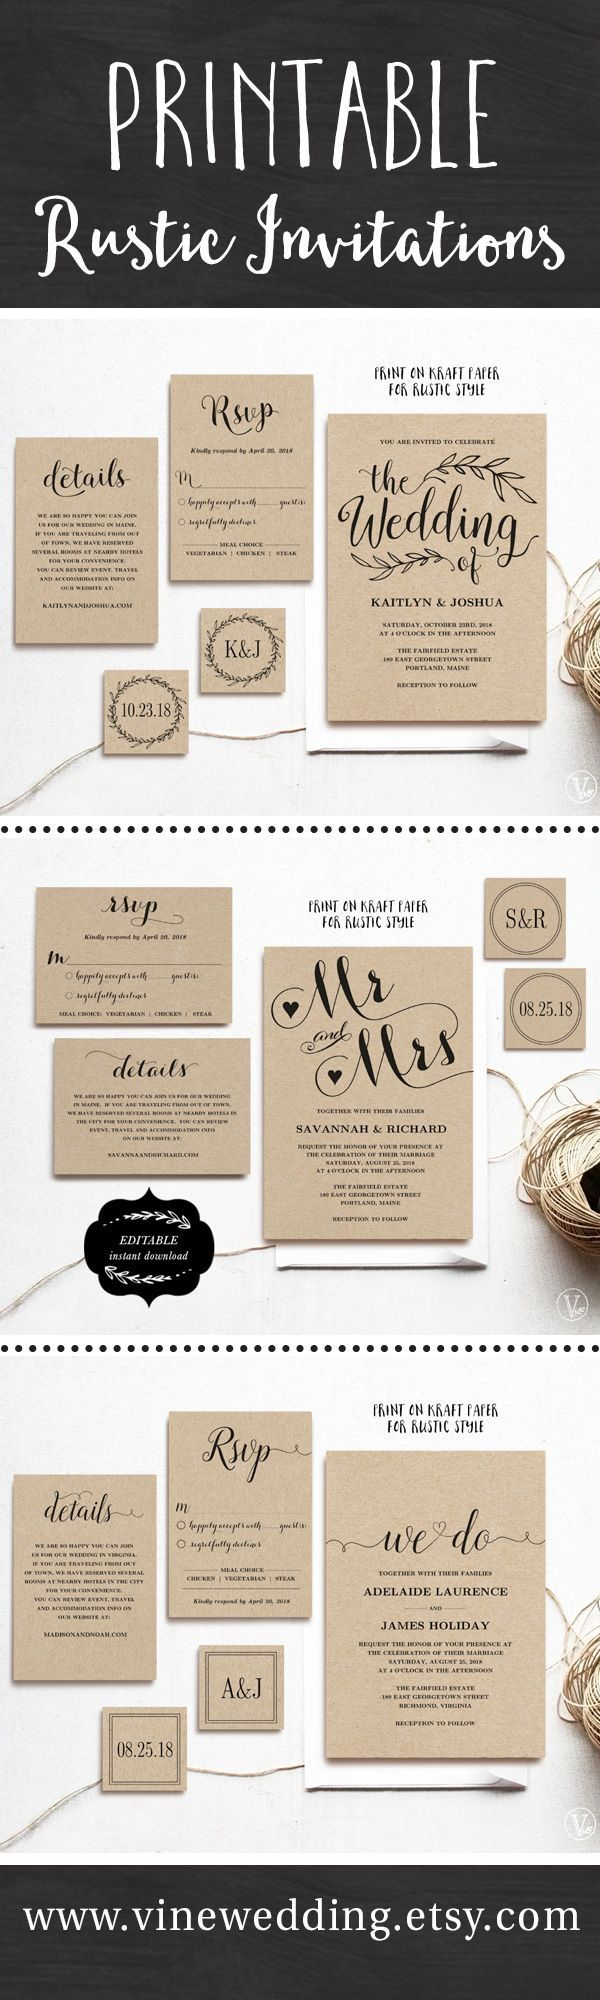 sister wedding invitation card wordings%0A Beautiful rustic wedding invitations  Editable instant download templates  you can print as many as you    Casual Wedding Invitation WordingFree